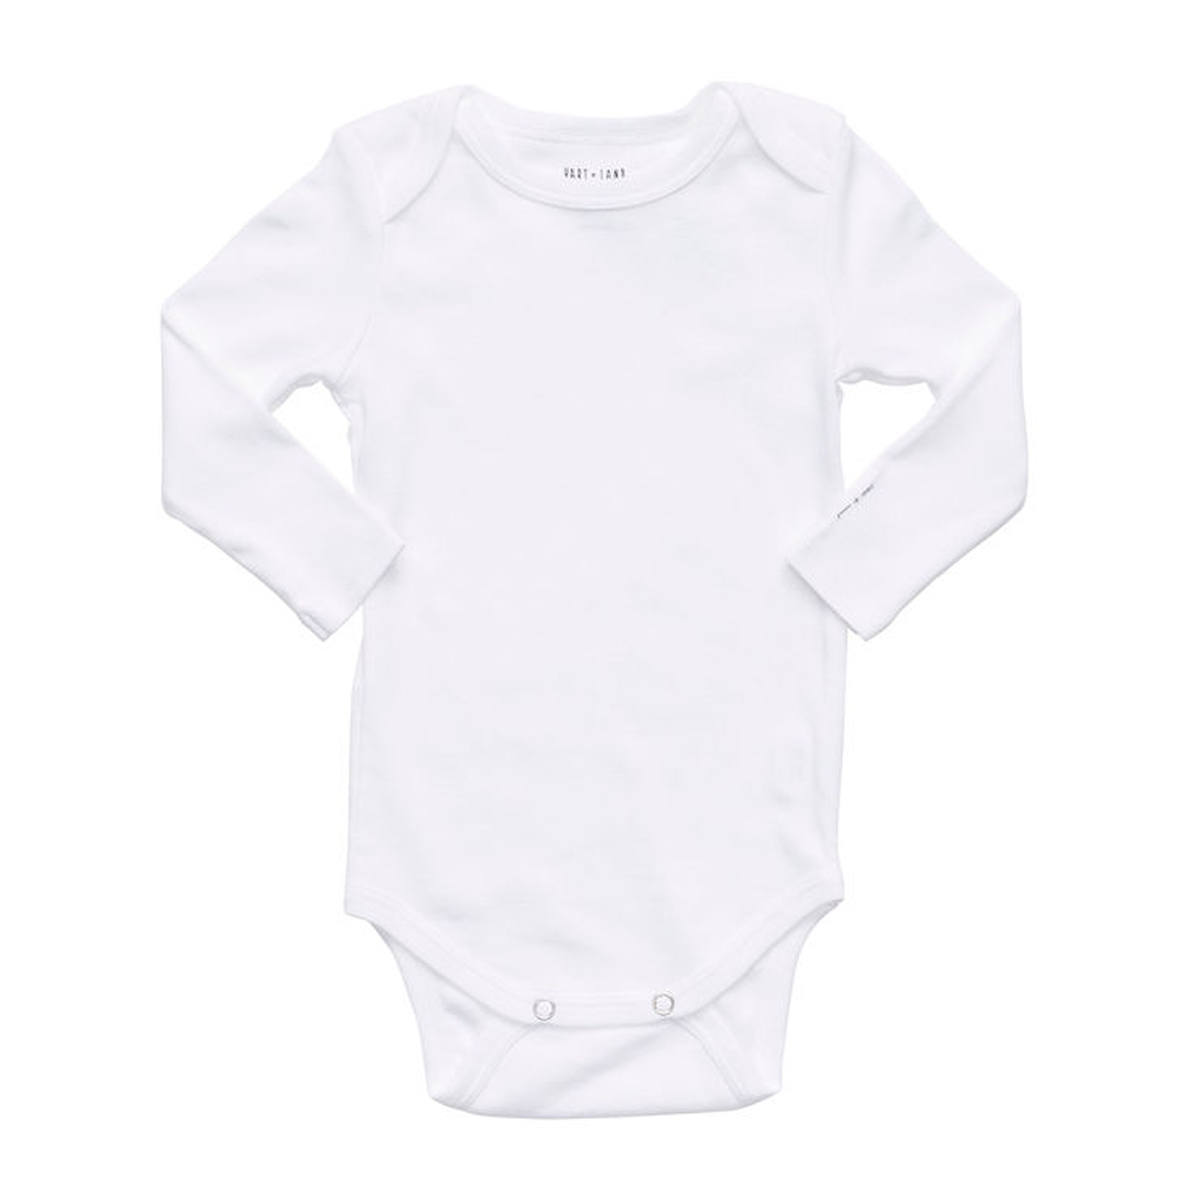 Hart + Land Long Sleeve Bodysuit in Bright White